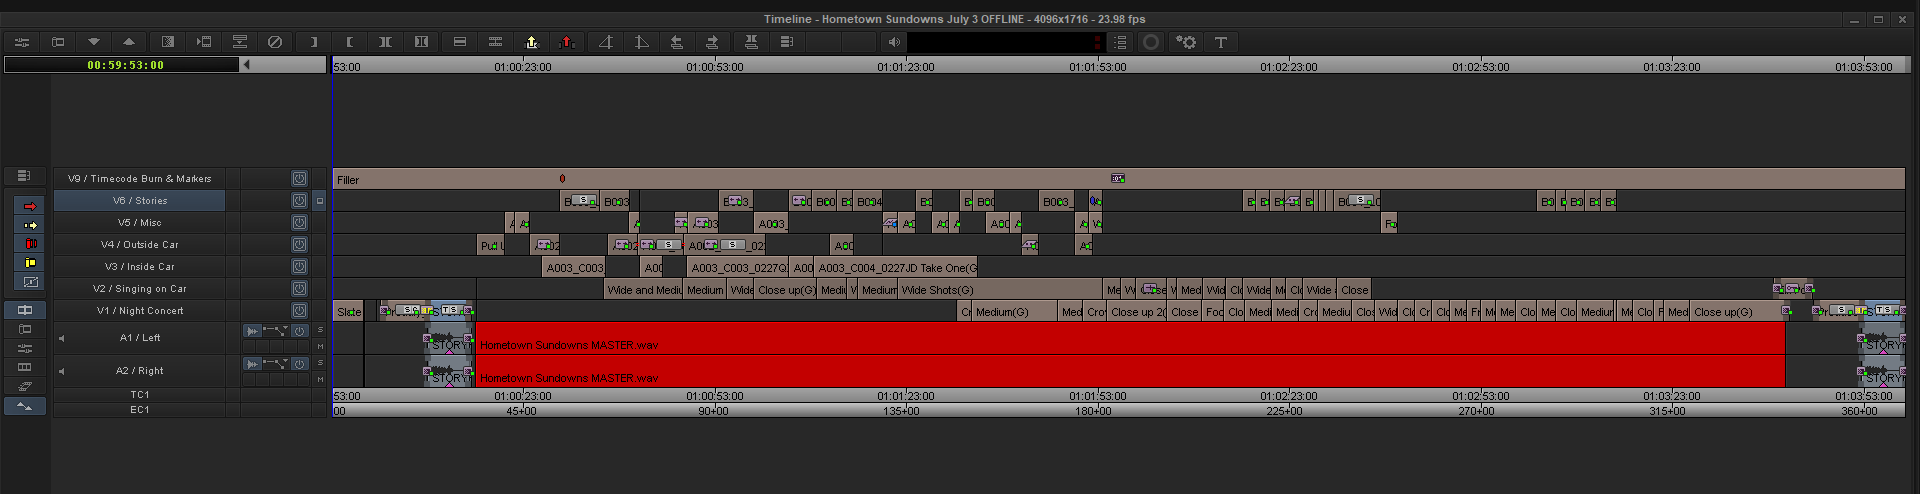 Not much difference here from how the timeline looks stand point but many shots have changed move or been replaced.